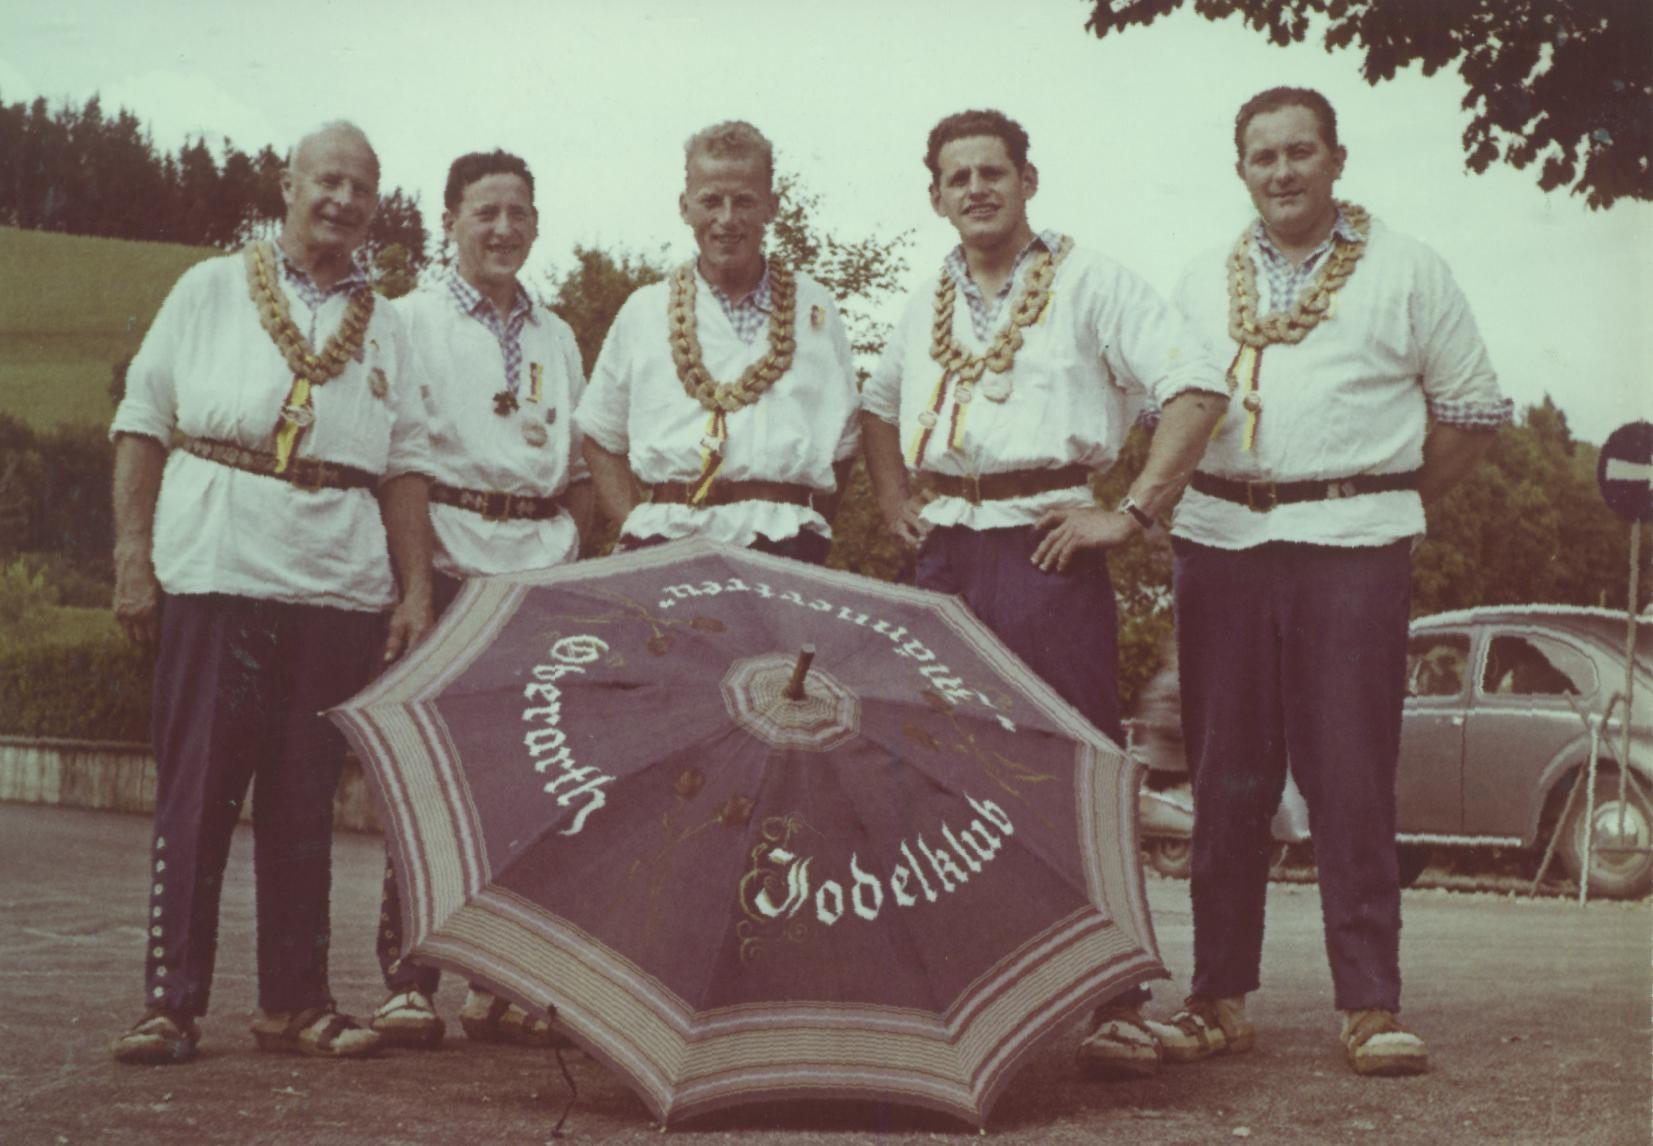 Am ZSJV-Jodlerfest 1960 in Willisau